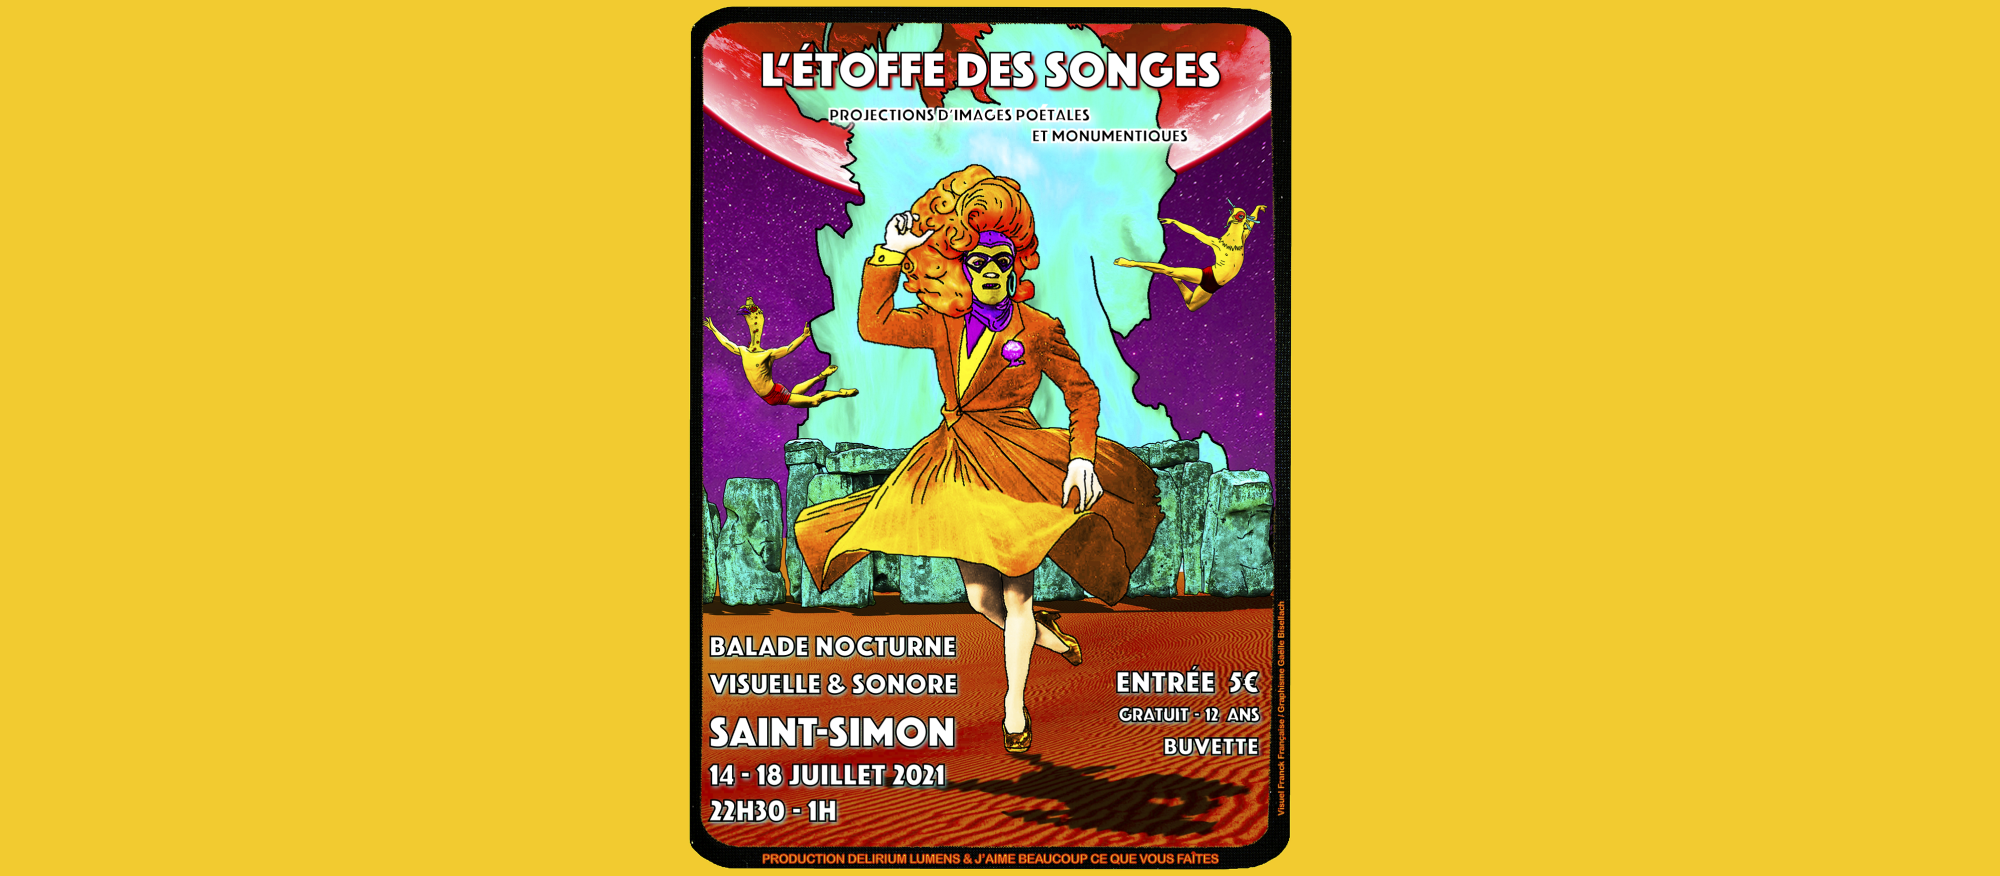 Étoffe des songes recto tract-1.jpg